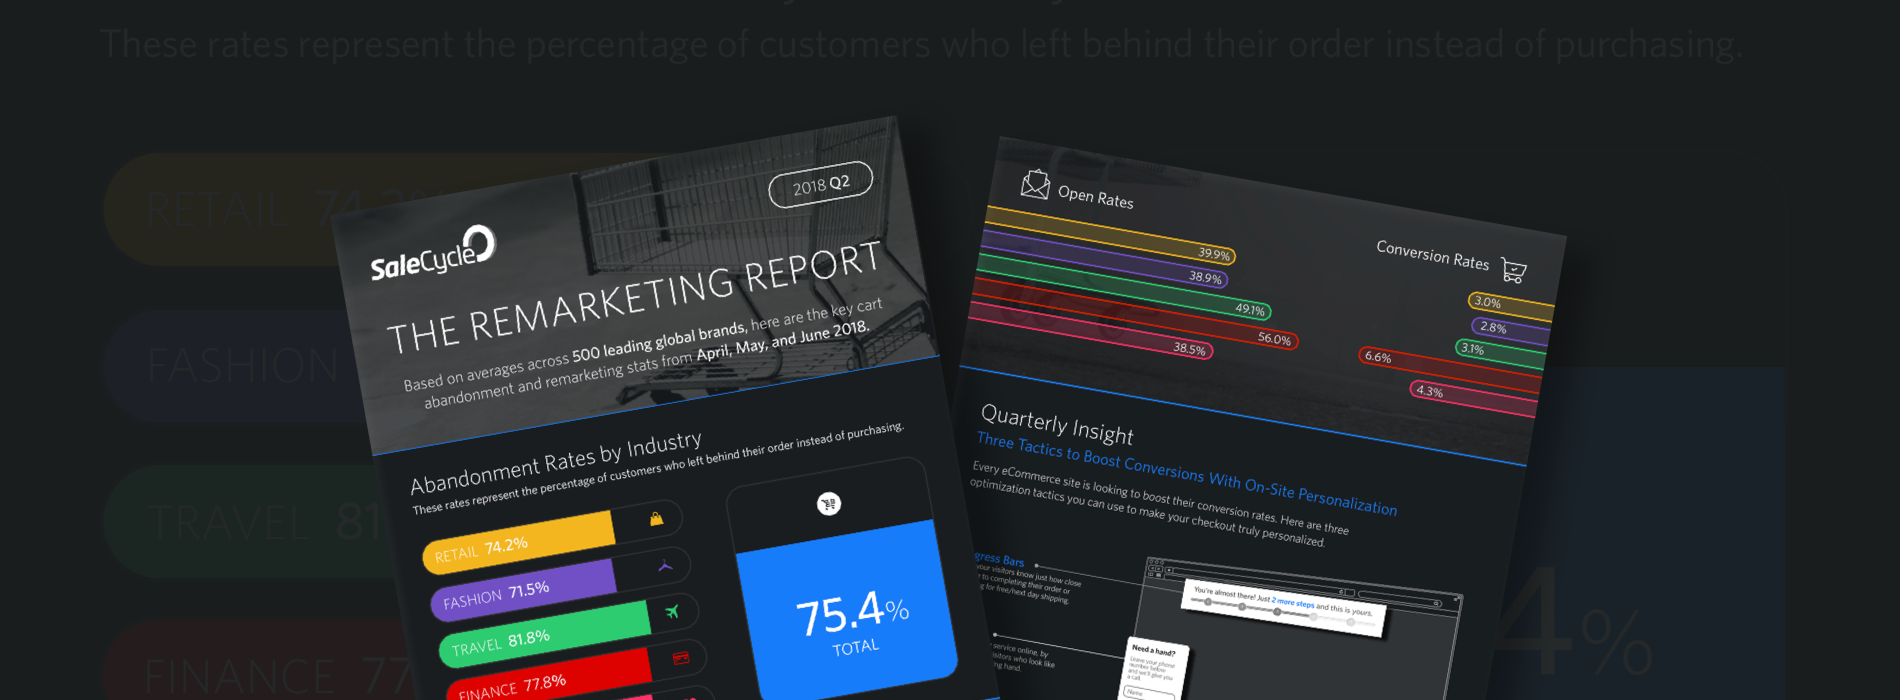 [Infographic] The Remarketing Report – Q2 2018